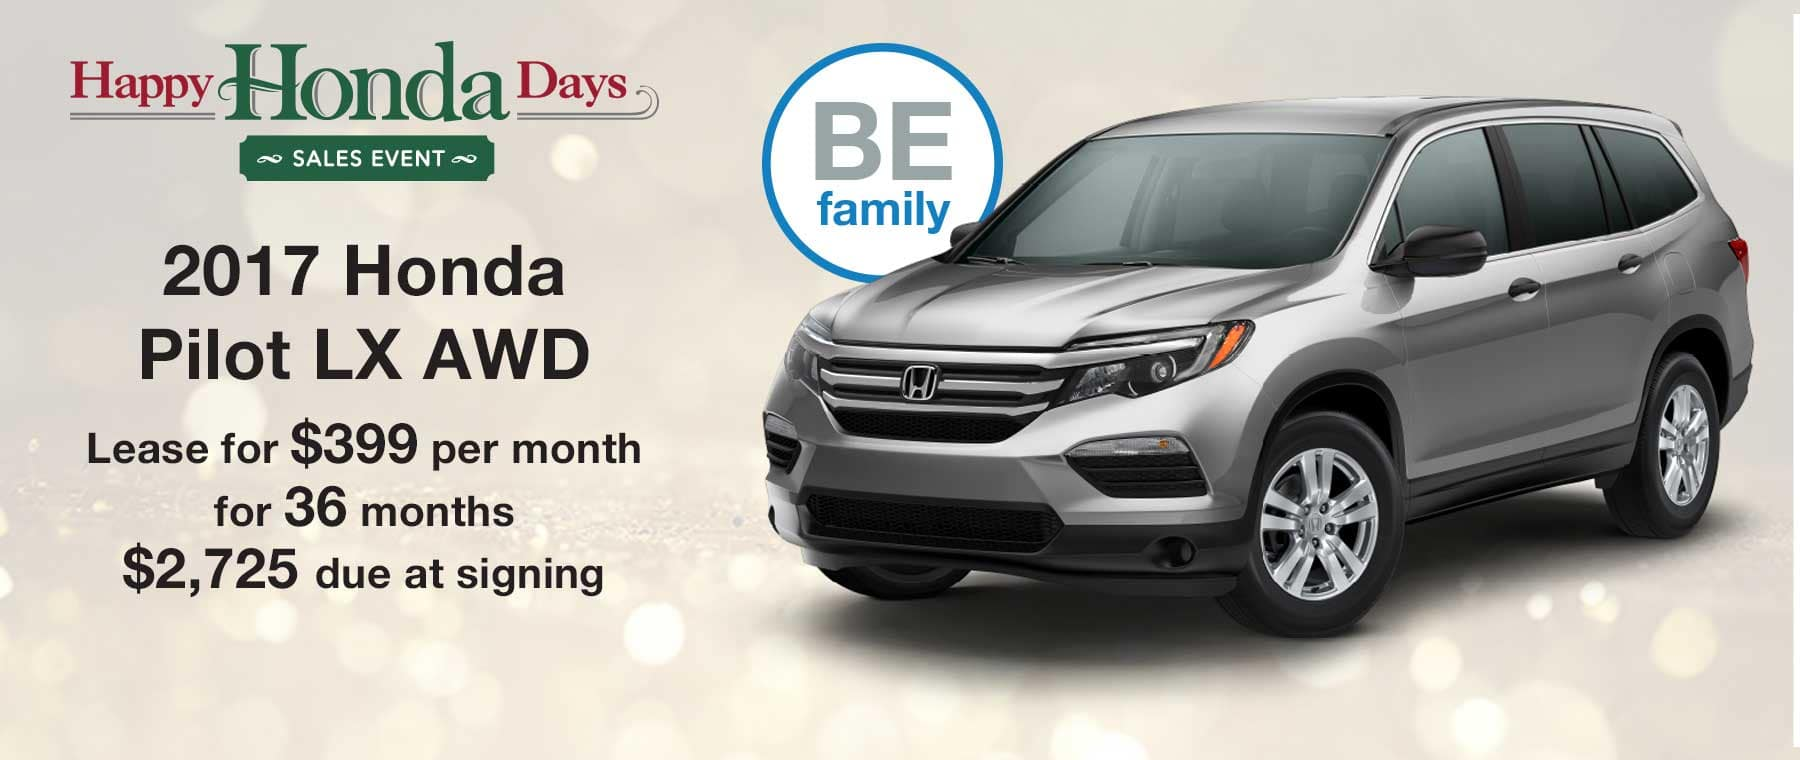 Lease a new 2017 Honda Pilot LX AWD for $399 per month with $2,725 due at signing